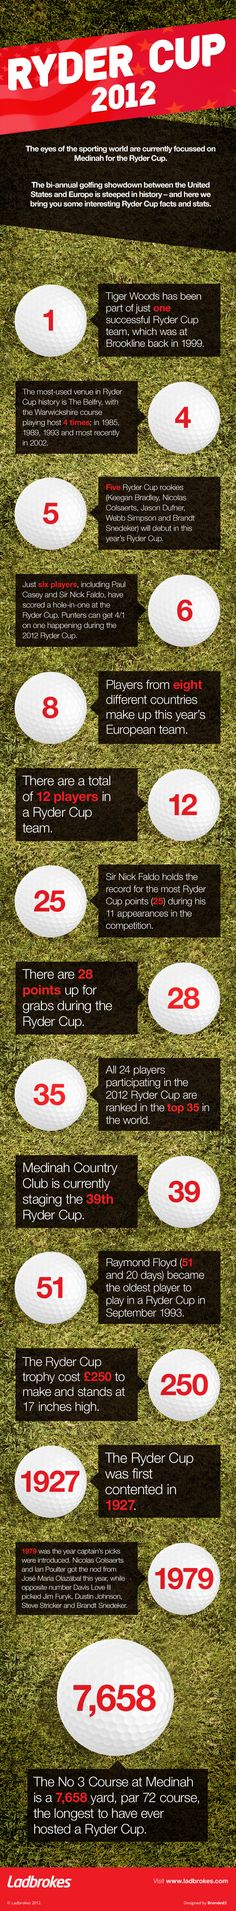 Putt (!) one over your mates with this awesome Ryder Cup infographic! #RyderCup #TeamEurope  http://twitter.yfrog.com/oba7dmhj